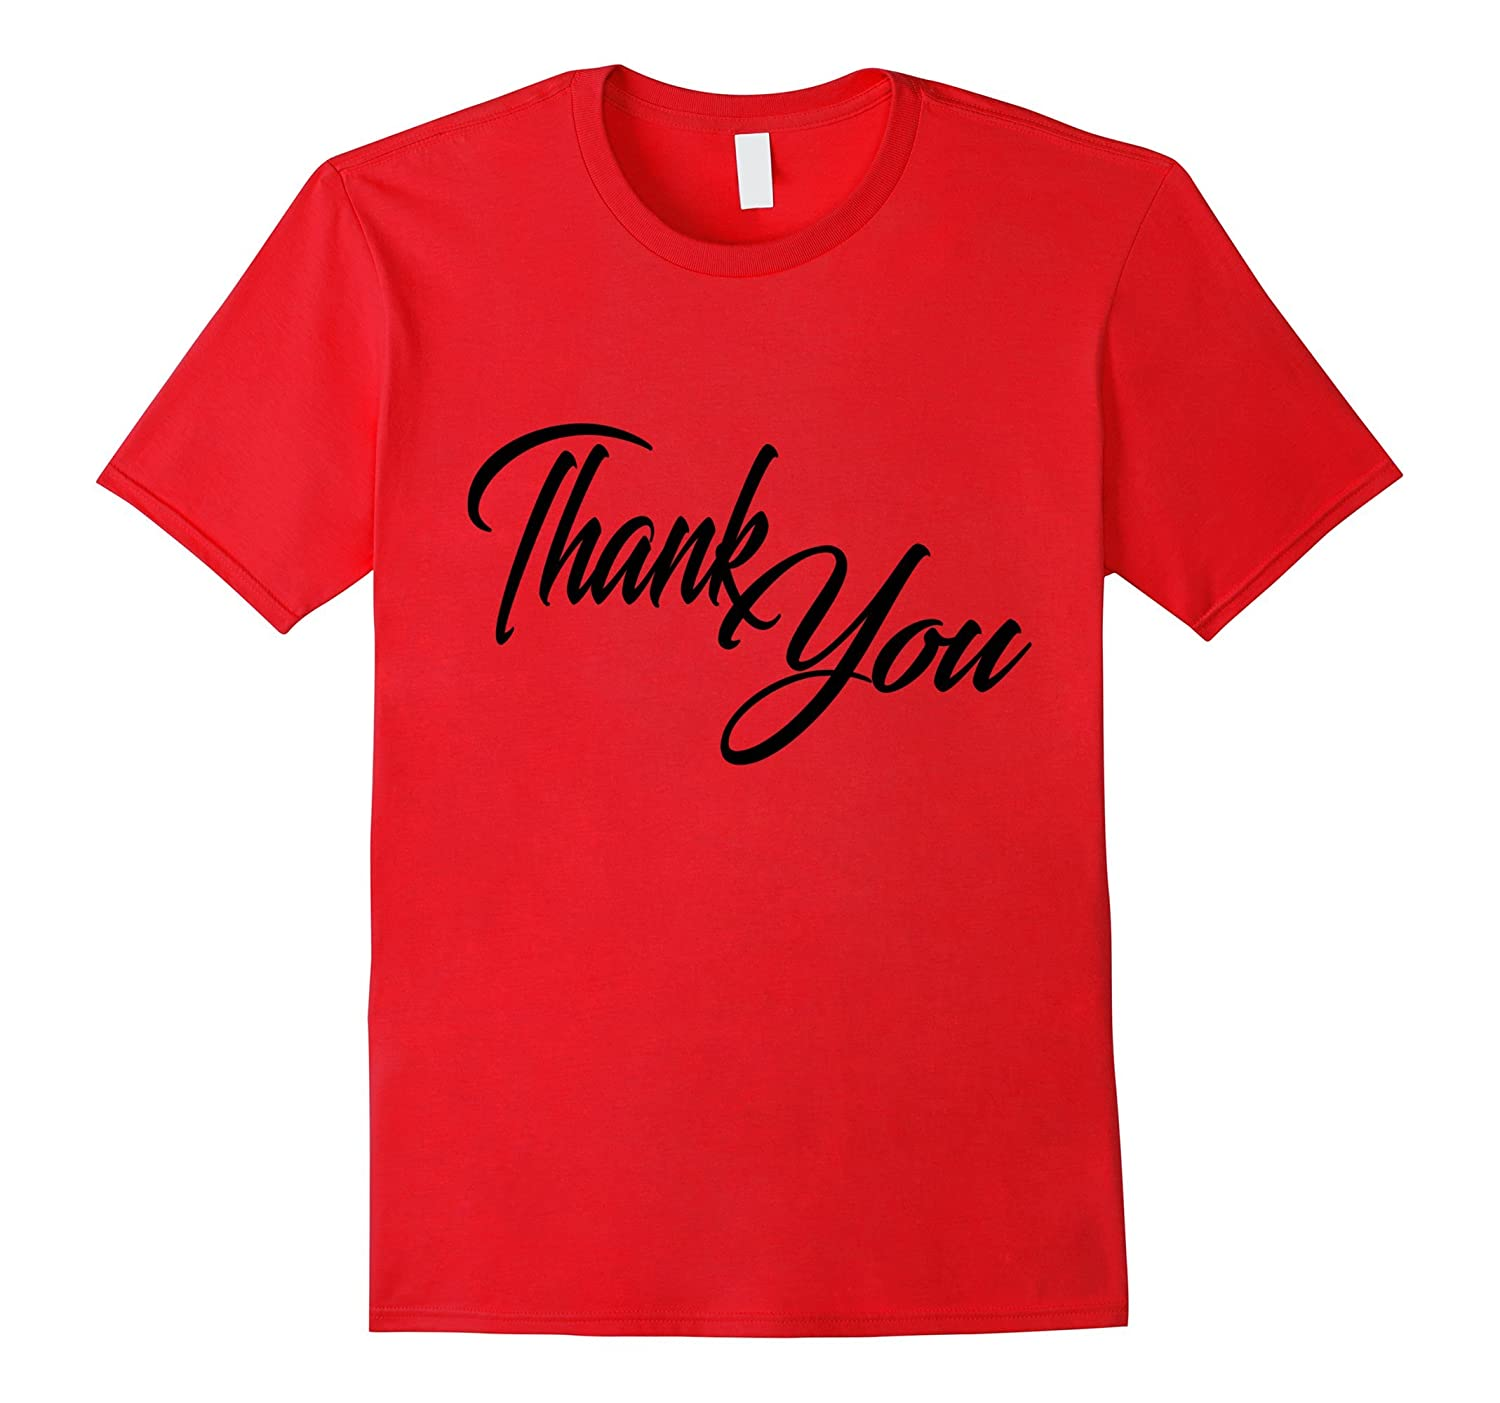 Thank You T-shirt  Vintage Iconic Funny Retro-CL